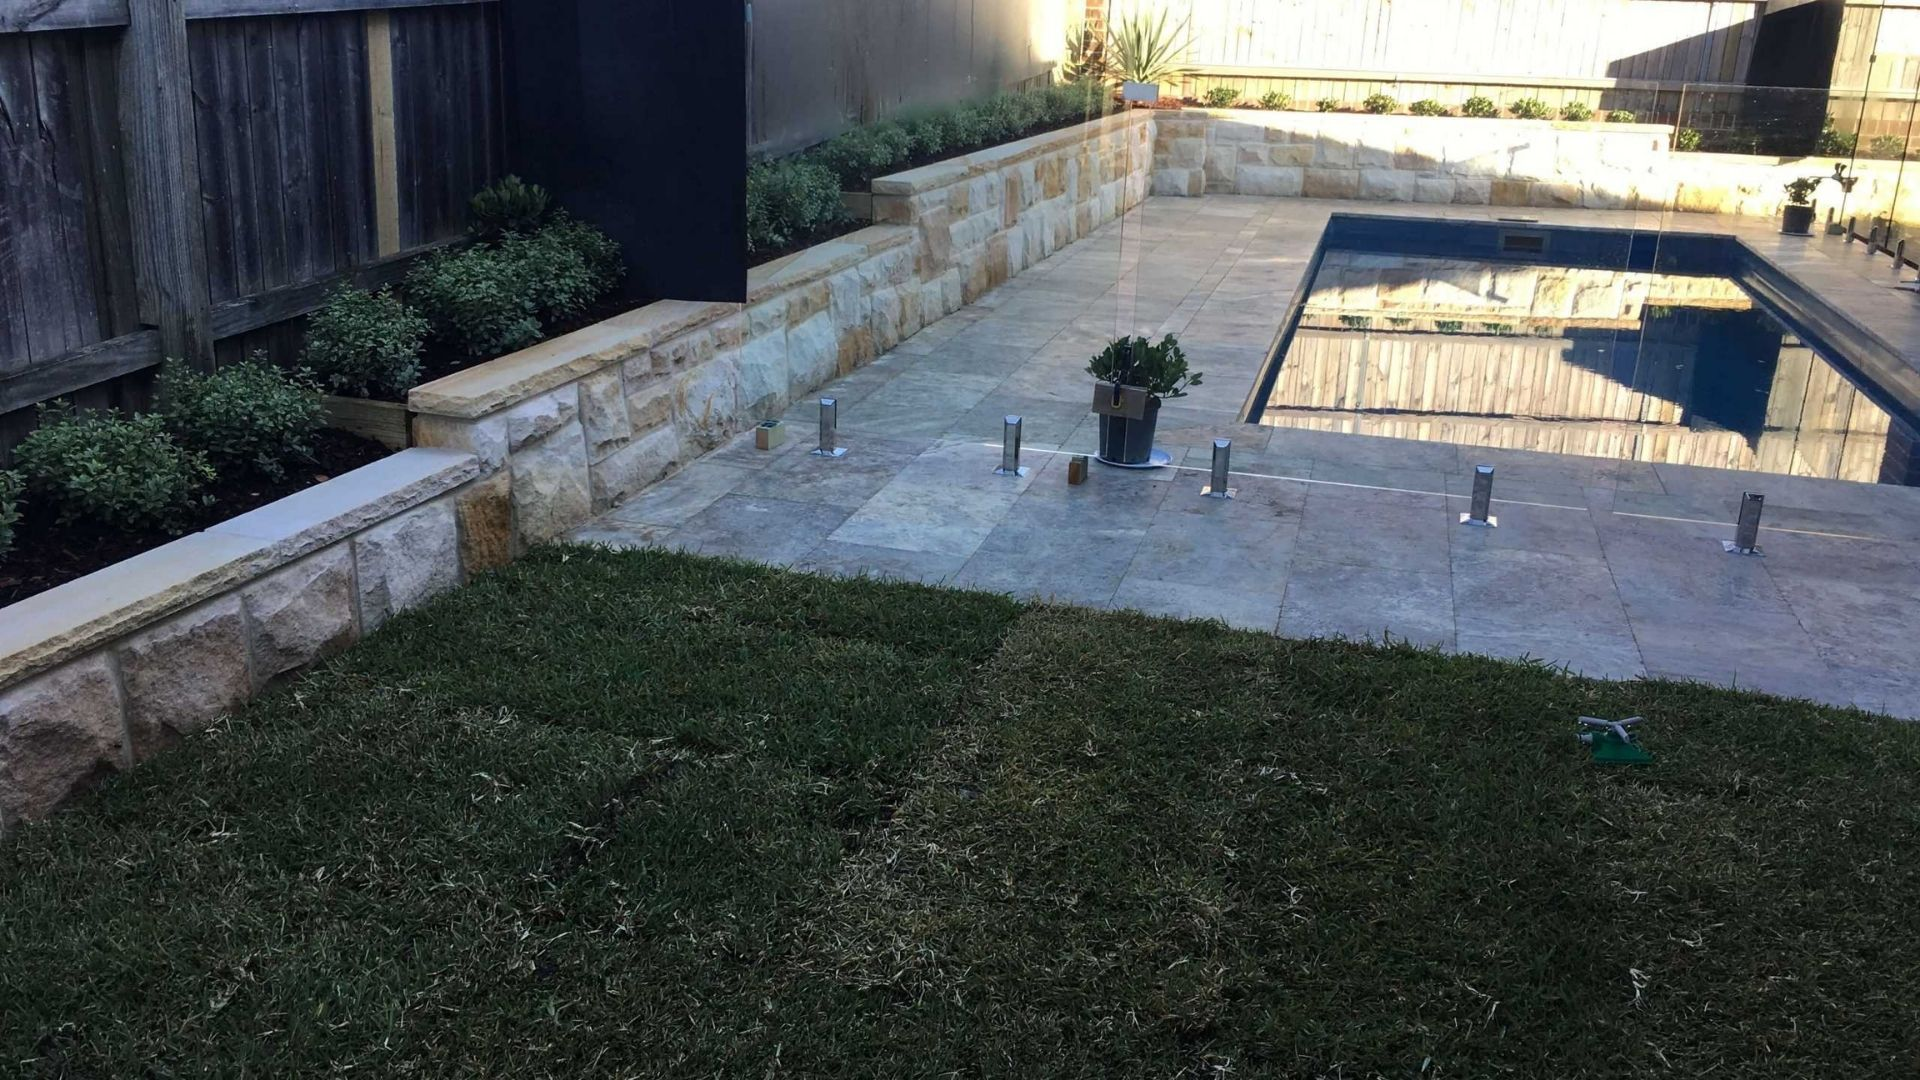 Structural Landscaping Checklist When Hiring a Professiona